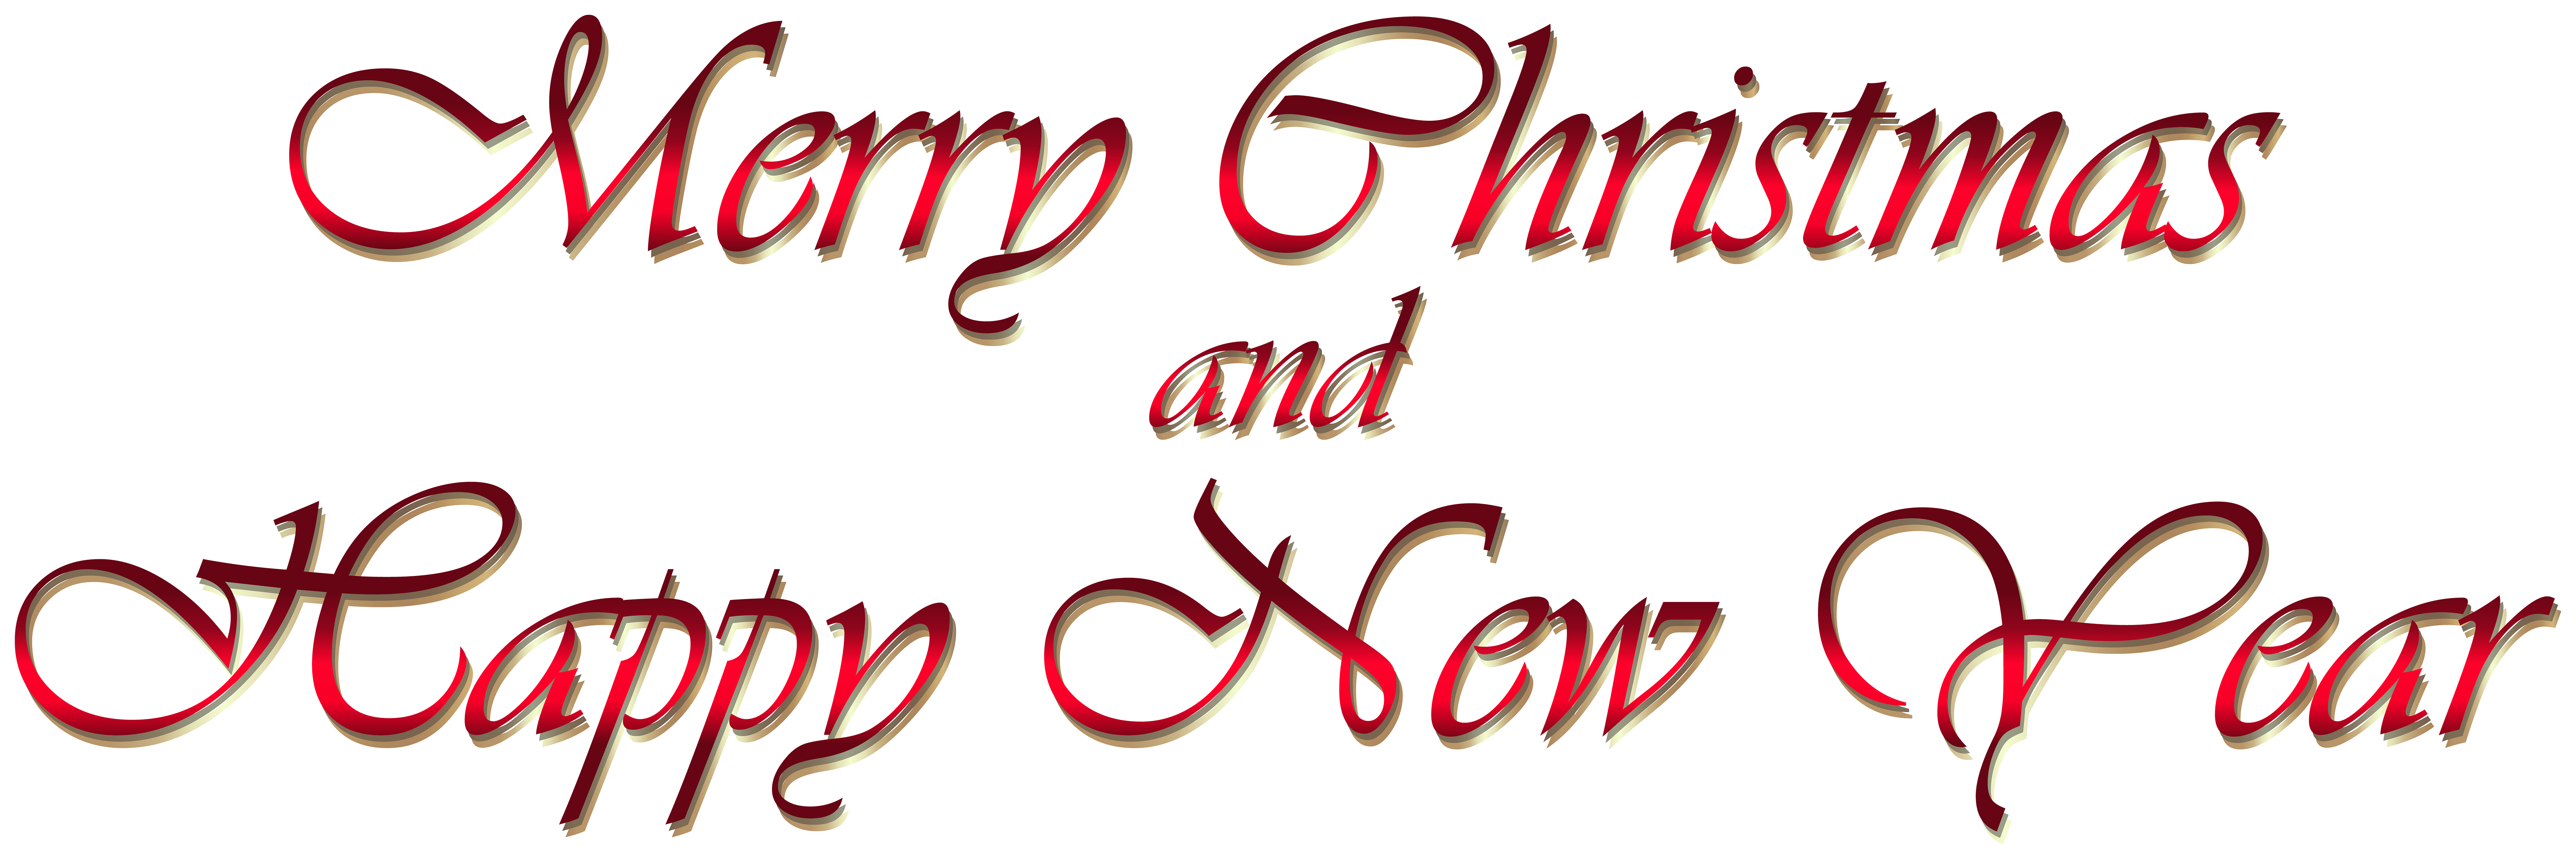 Merry Christmas and Happy New Year Text PNG Clipart.